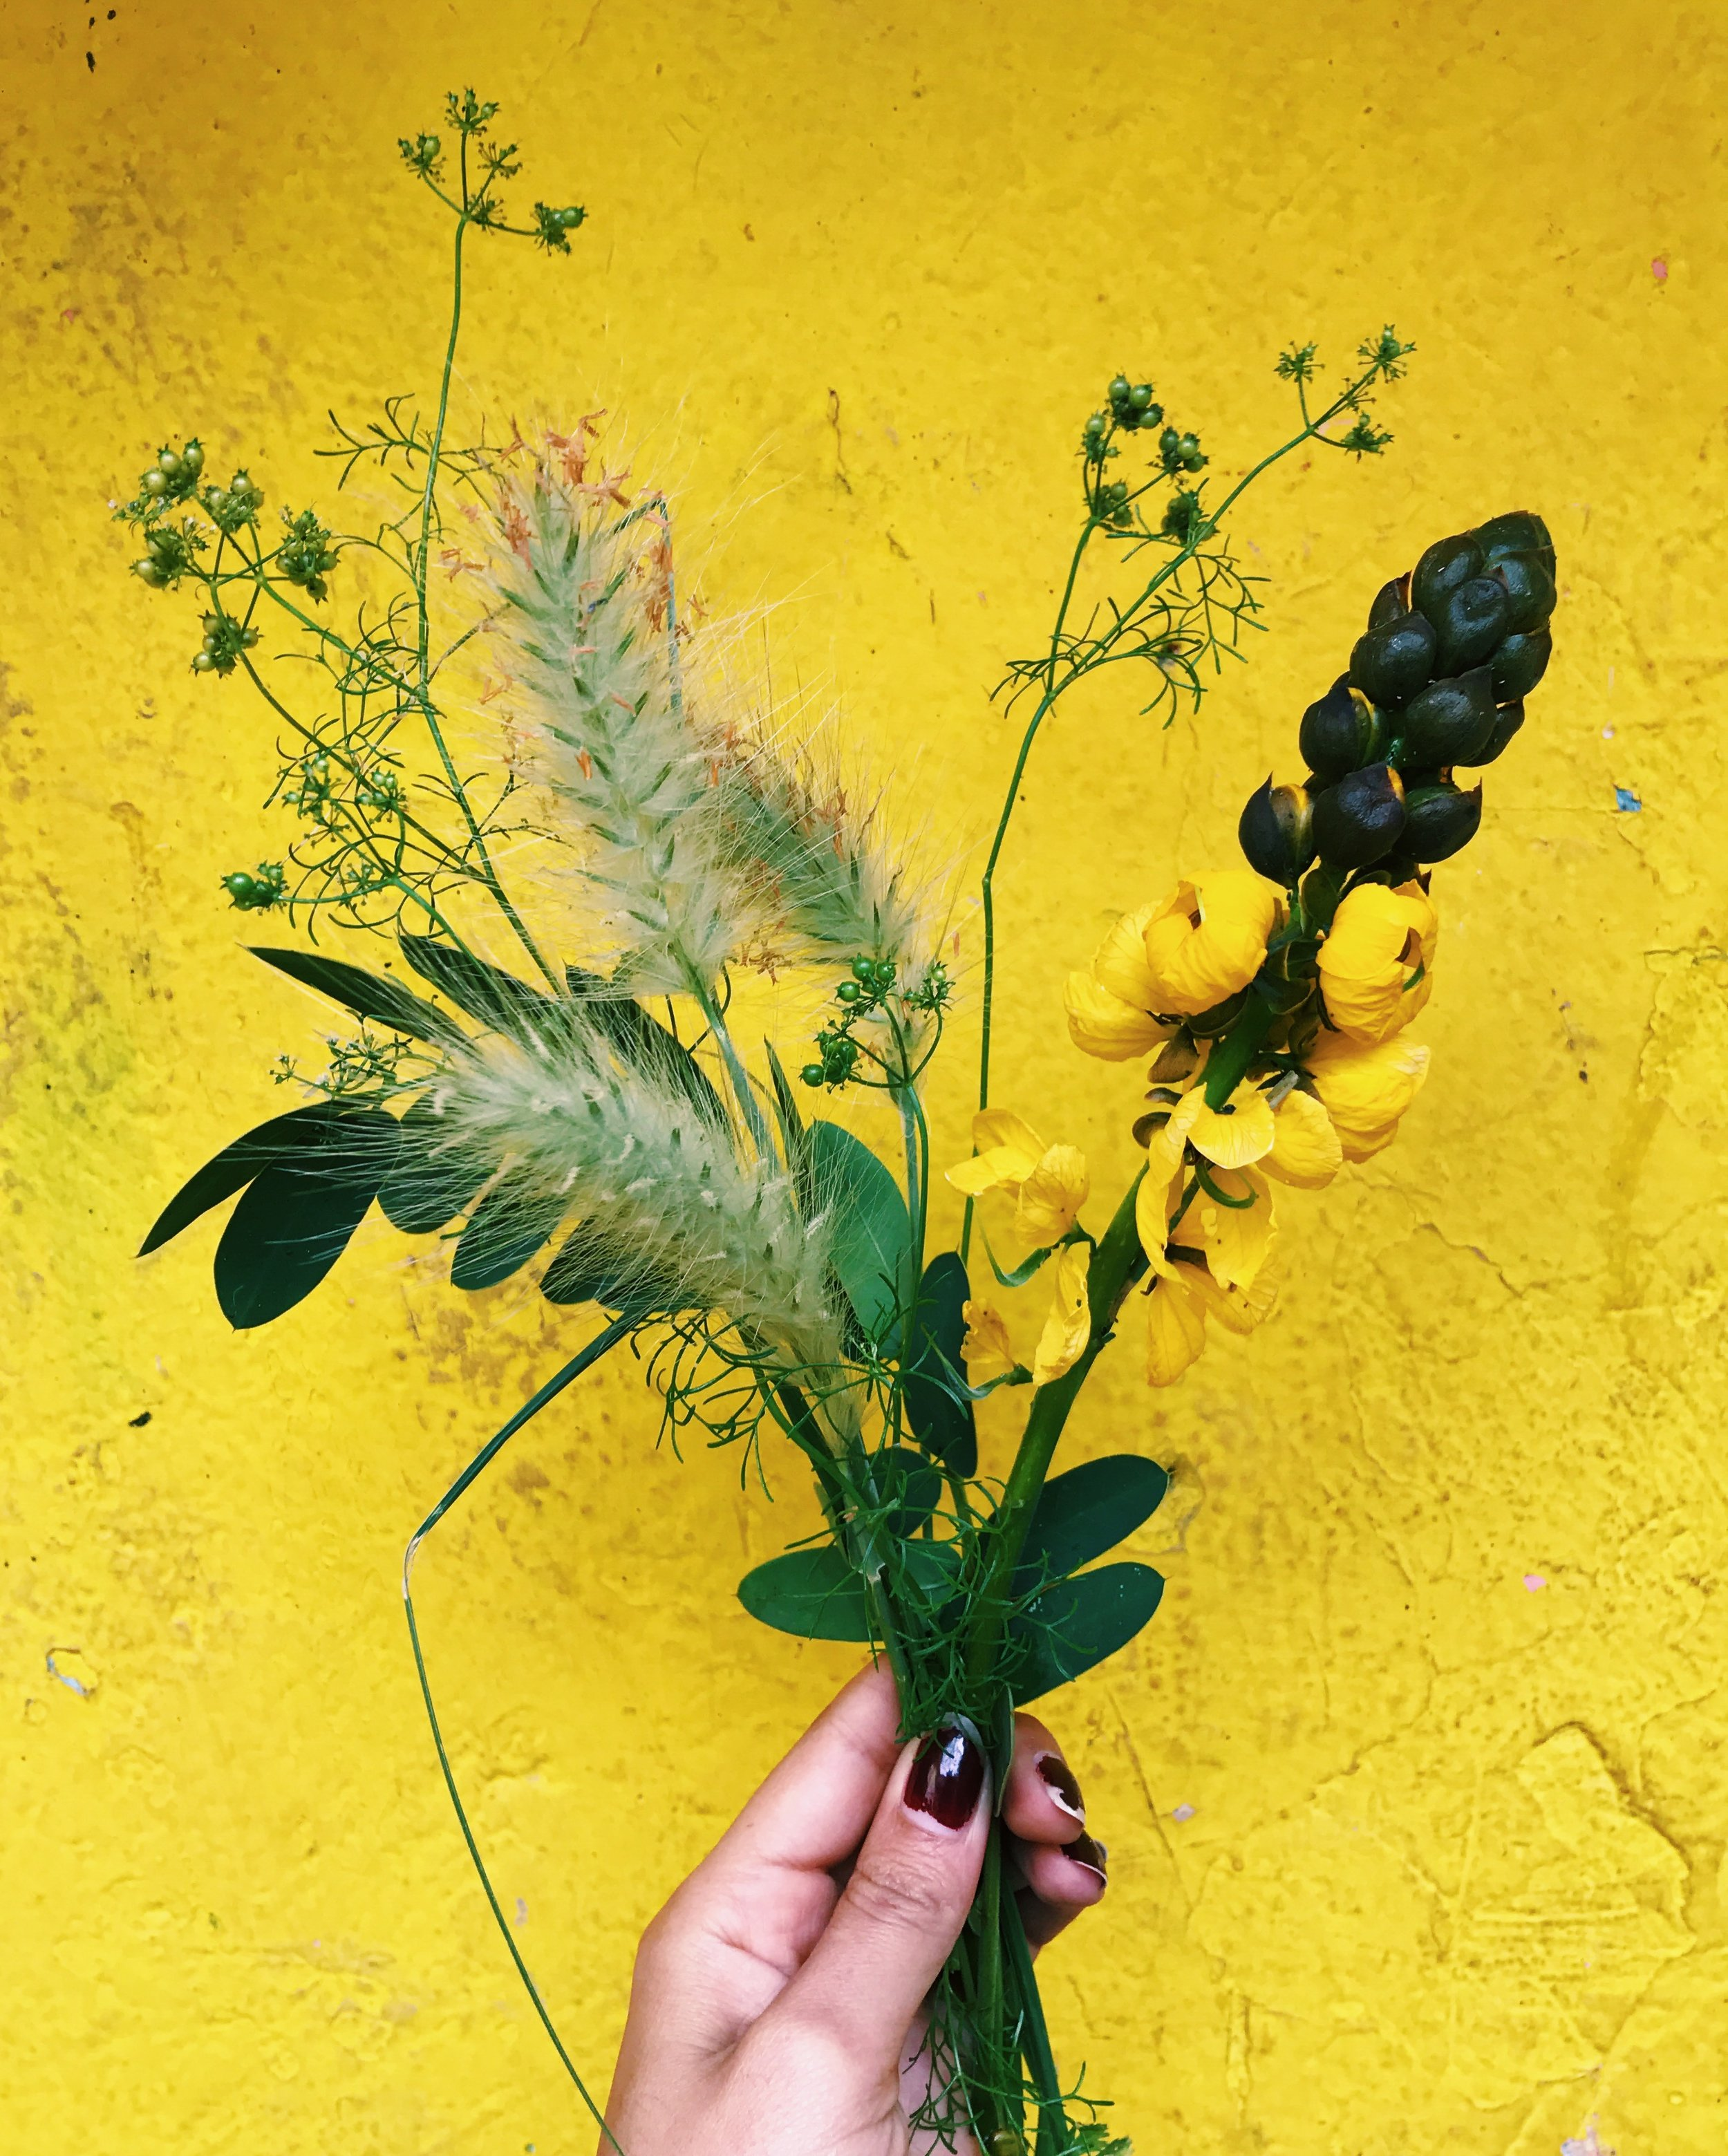 Some stuff from around the block - cilantro seed pods, bunny tails, and some pretty yellow flowers that smell just like buttered popcorn!